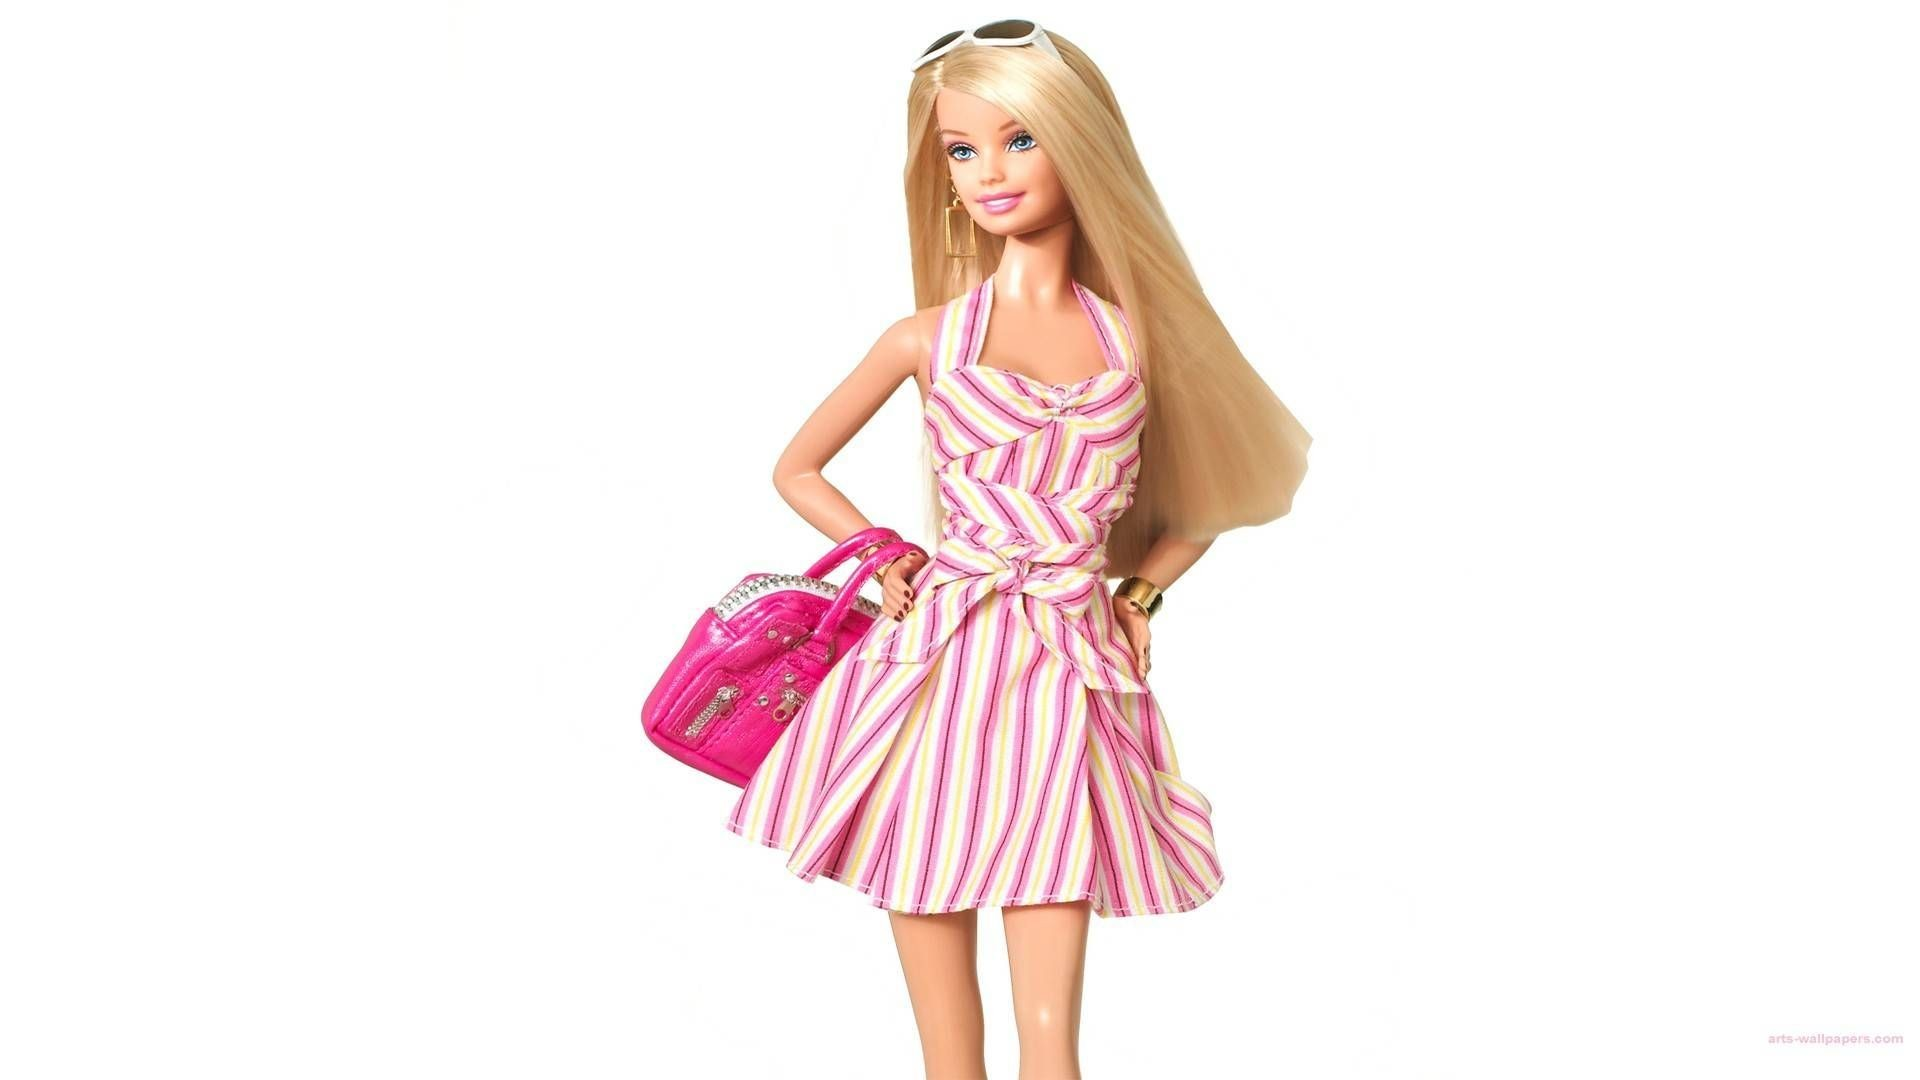 Cute Barbie Doll Wallpaper Images Barbie Doll Wallpaper 62 Images